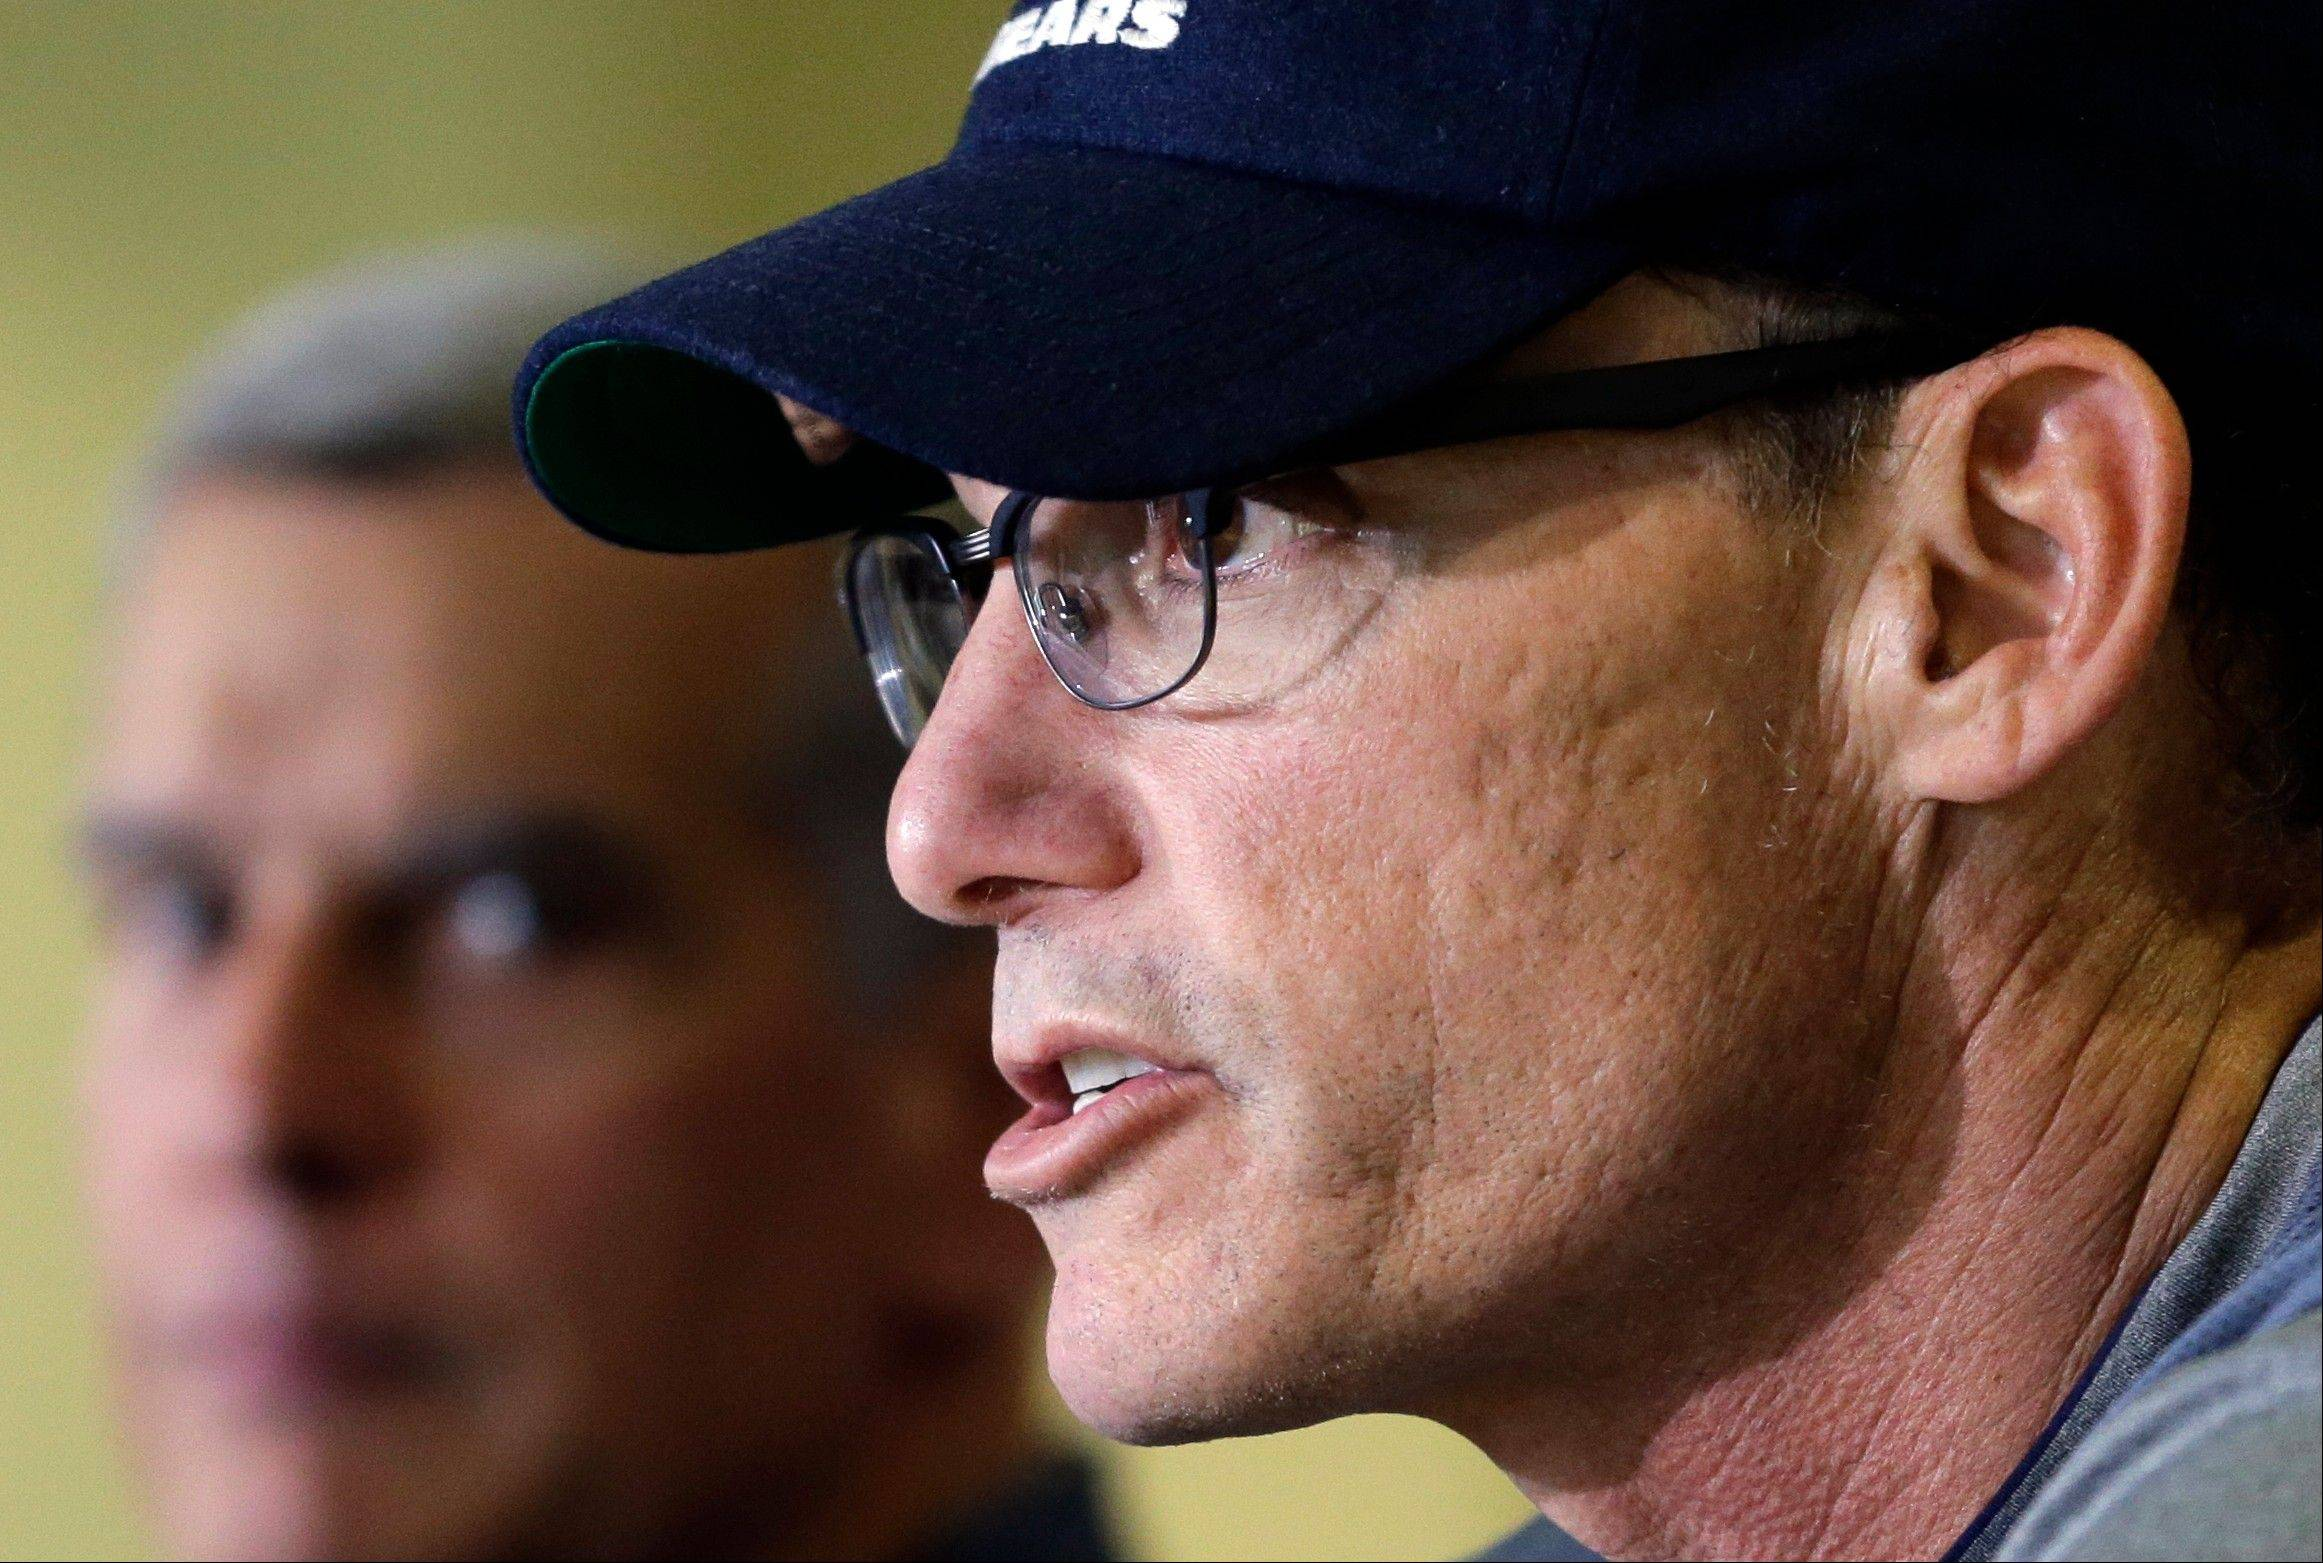 Chicago Bears coach Marc Trestman speaks during a news conference as the NFL football team prepares for training camp, Wednesday, July 24, 2013, in Bourbonnais, Ill.